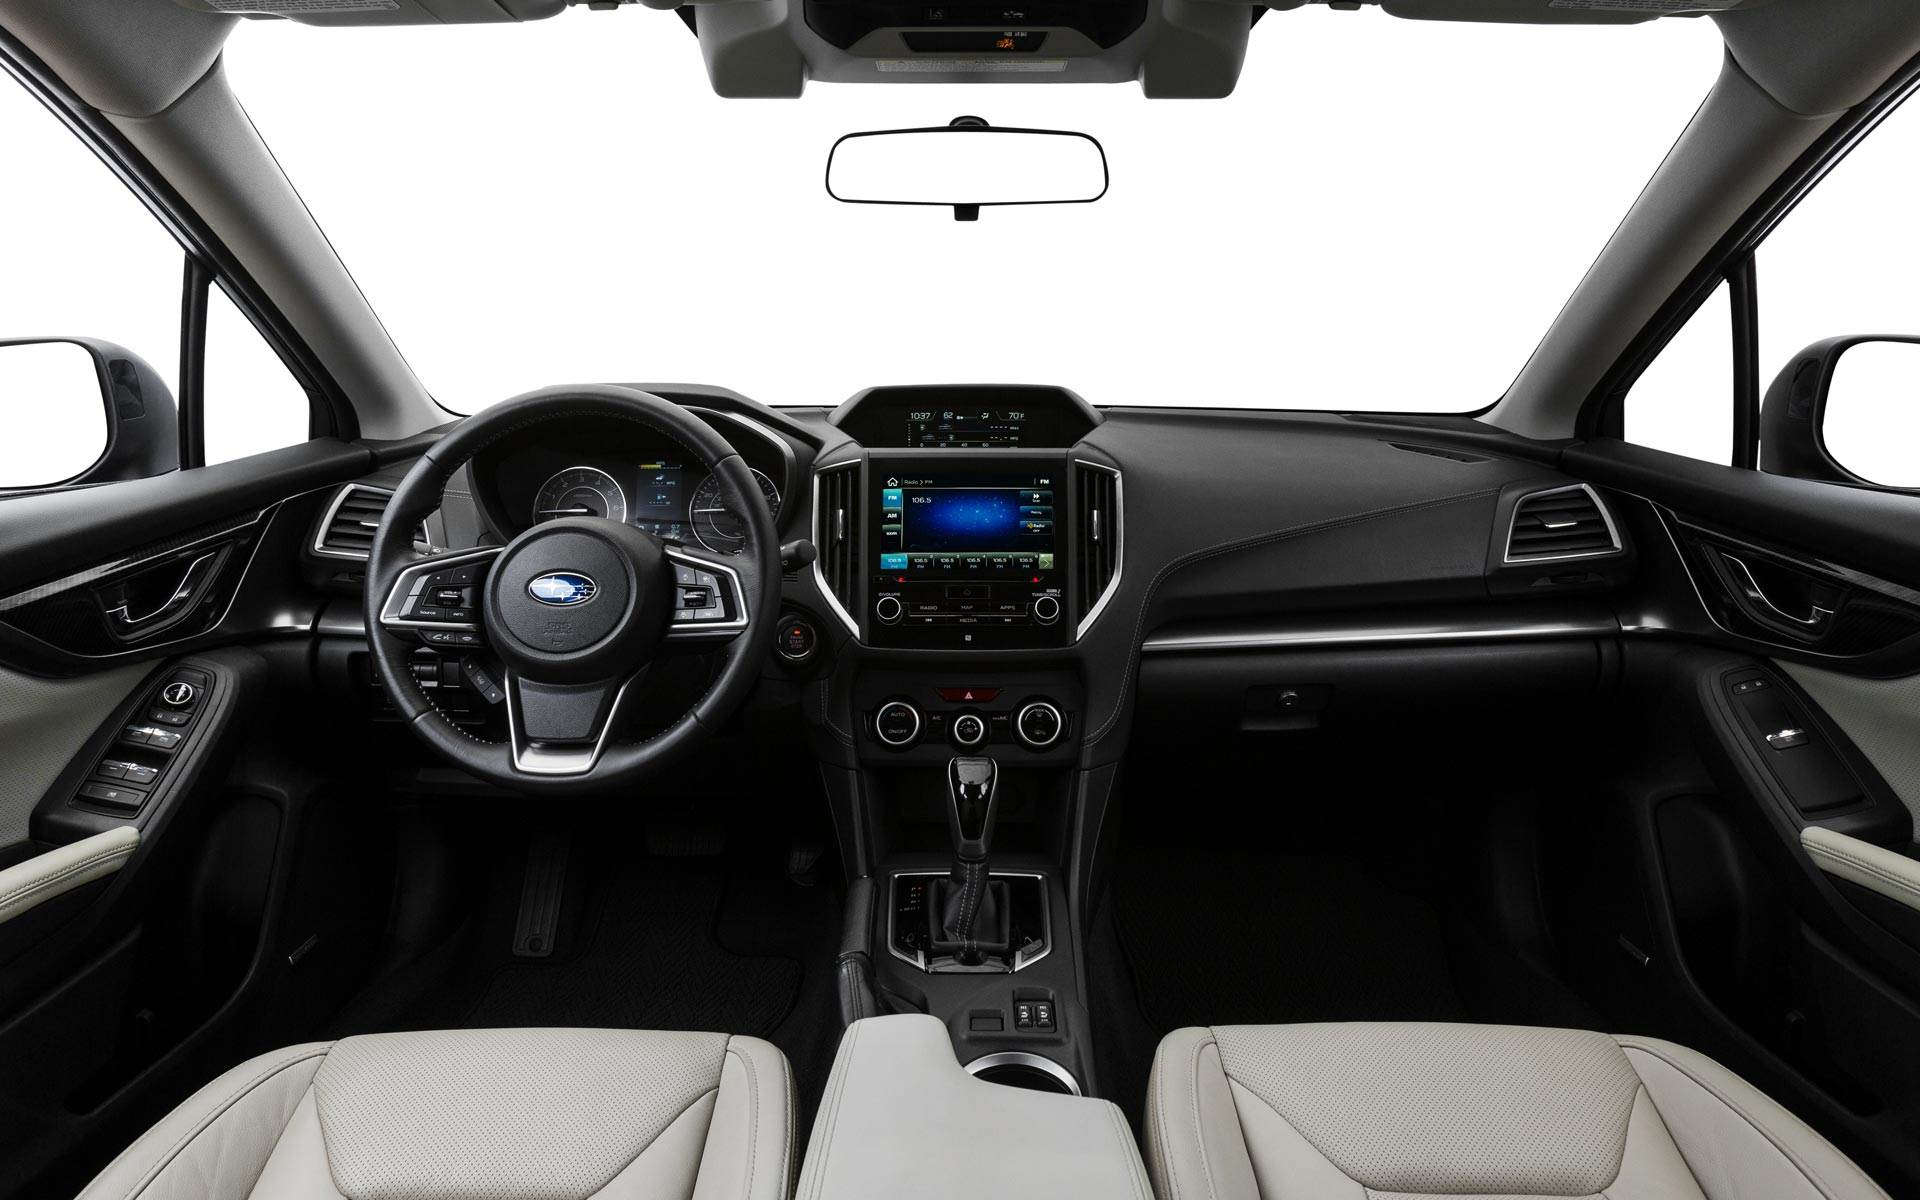 Subaru Impreza Named 10 Best Interior | All New Subaru Impreza For Sale  Long Island, NY